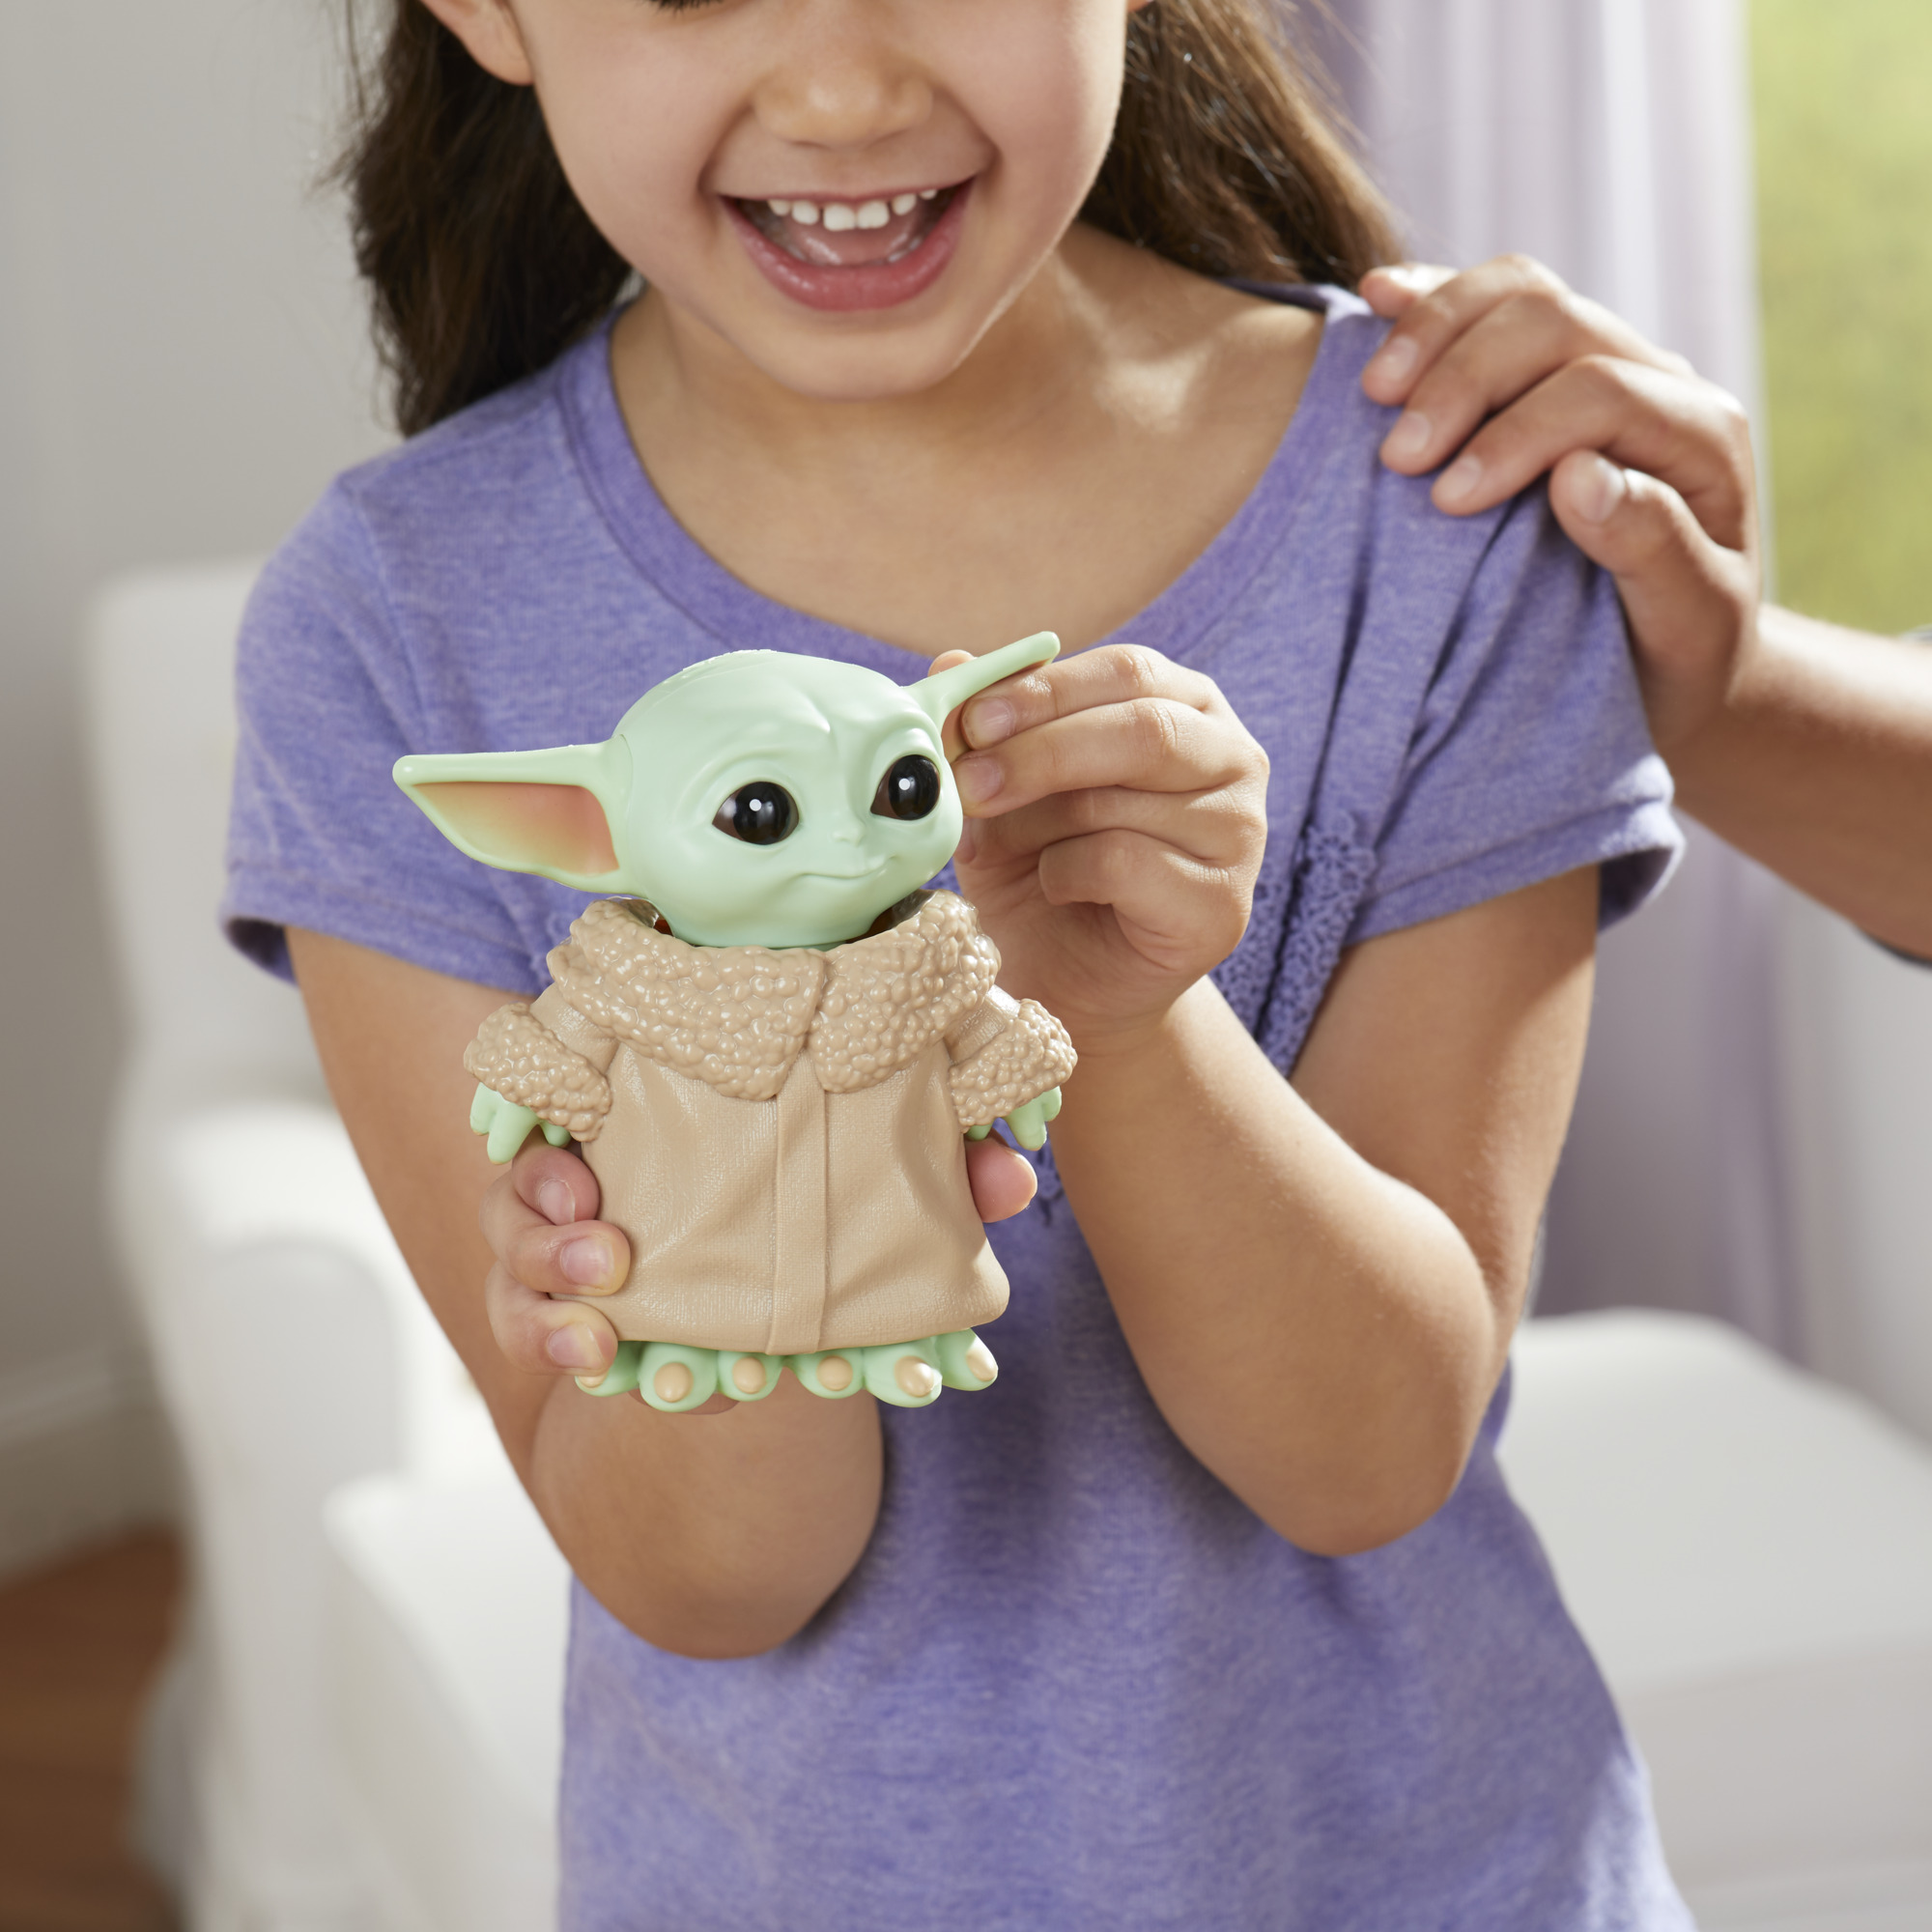 Bop It Star Wars The Mandalorian The Child Edition Baby Yoda Priority Shipping!